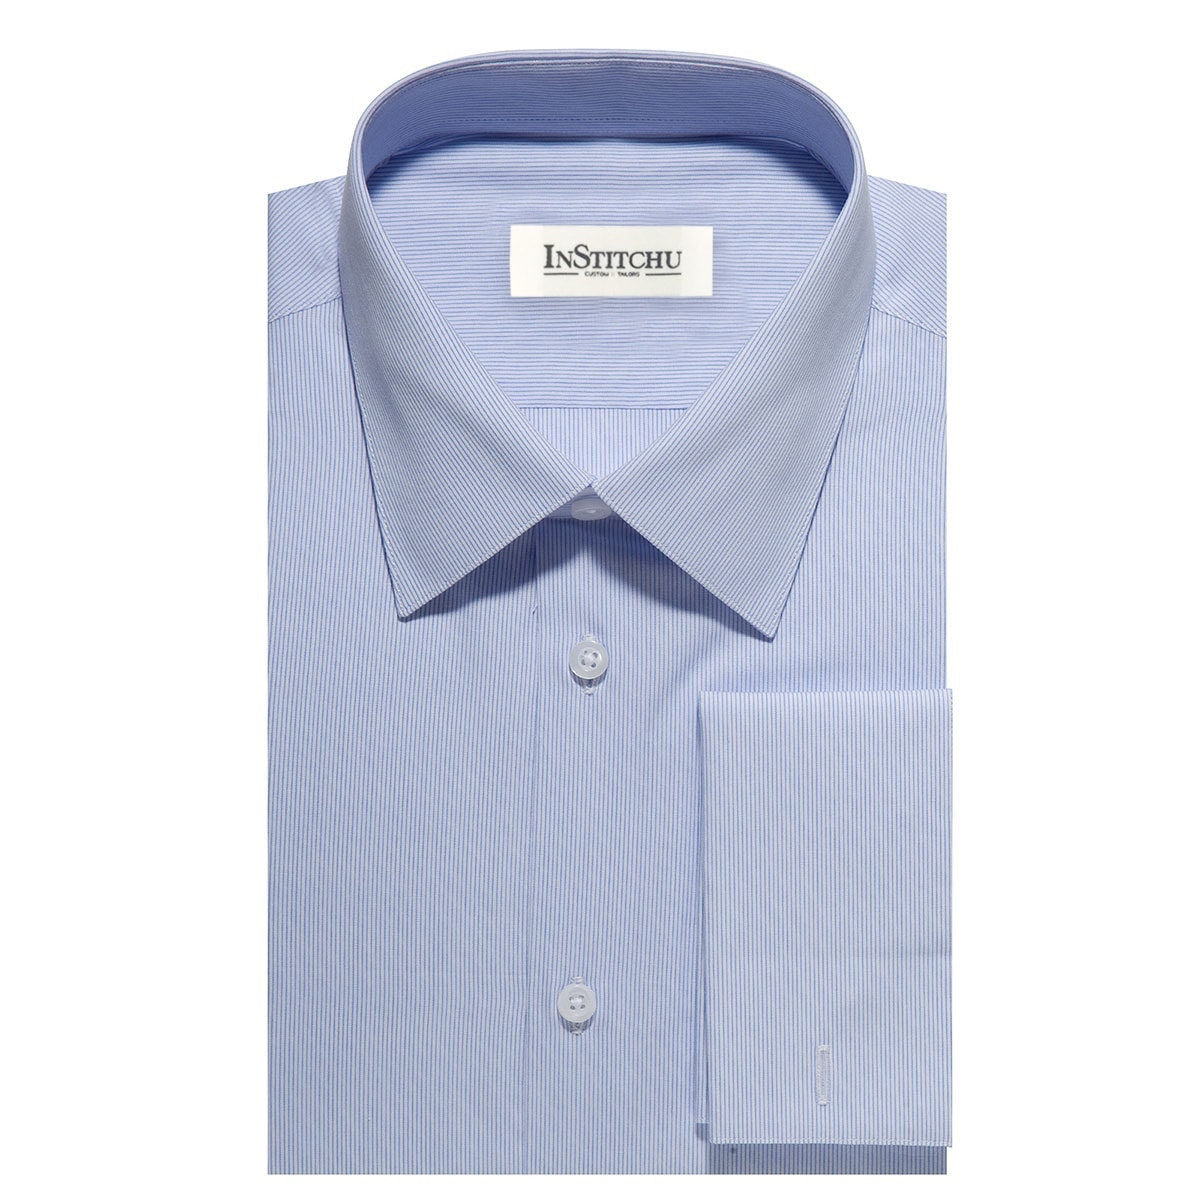 InStitchu Collection The Edisto Blue Stripe Shirt